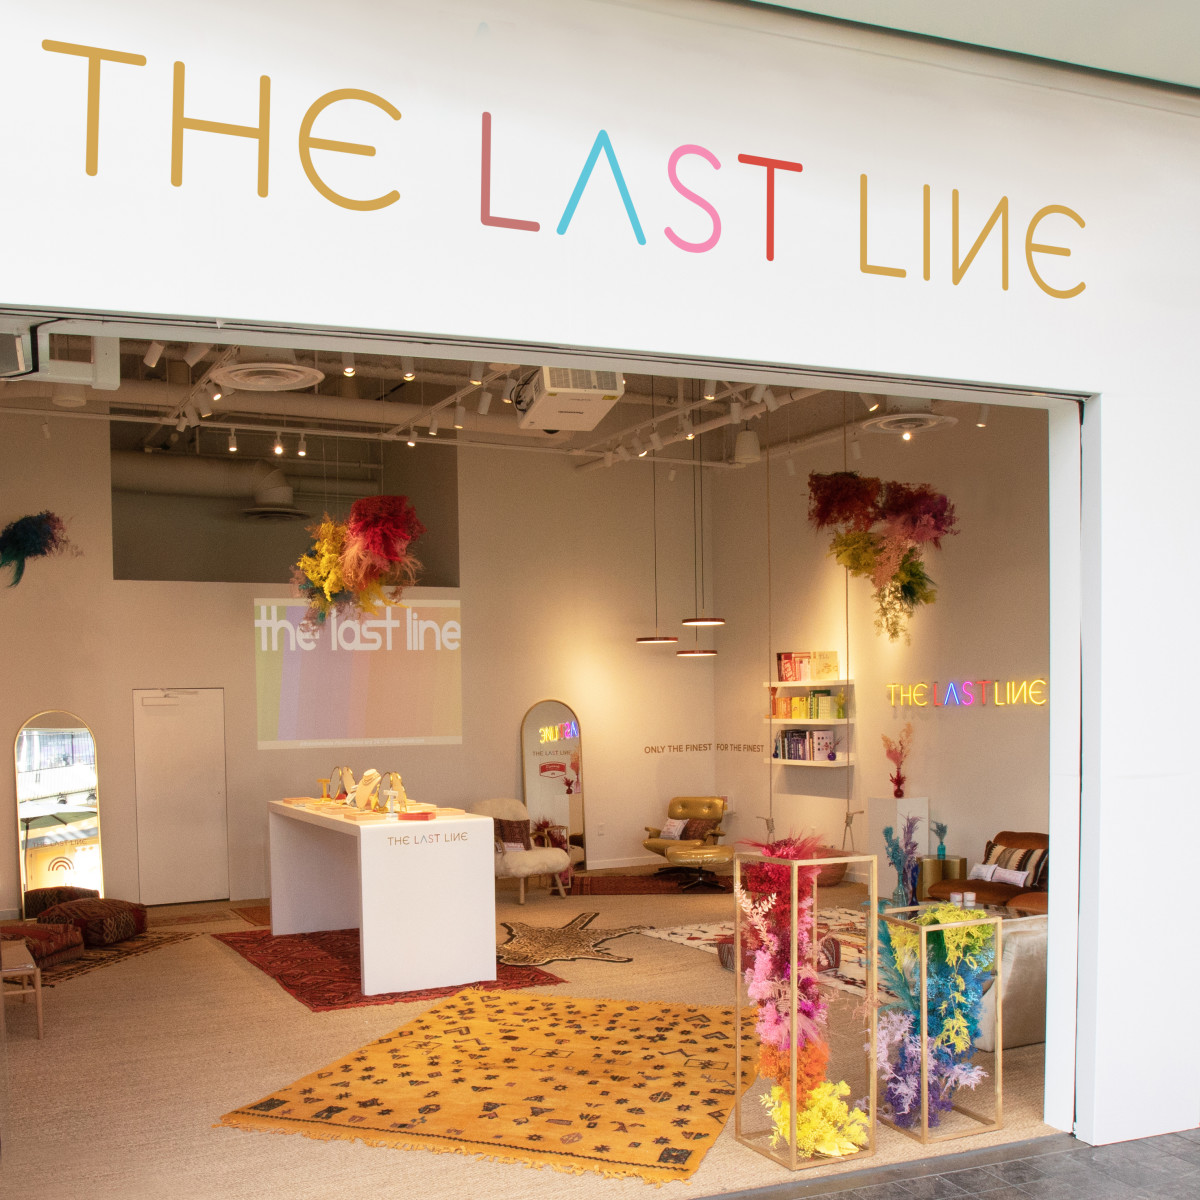 The Last Line pop-up at Westfield Century City. Photo: Teddy Sanders